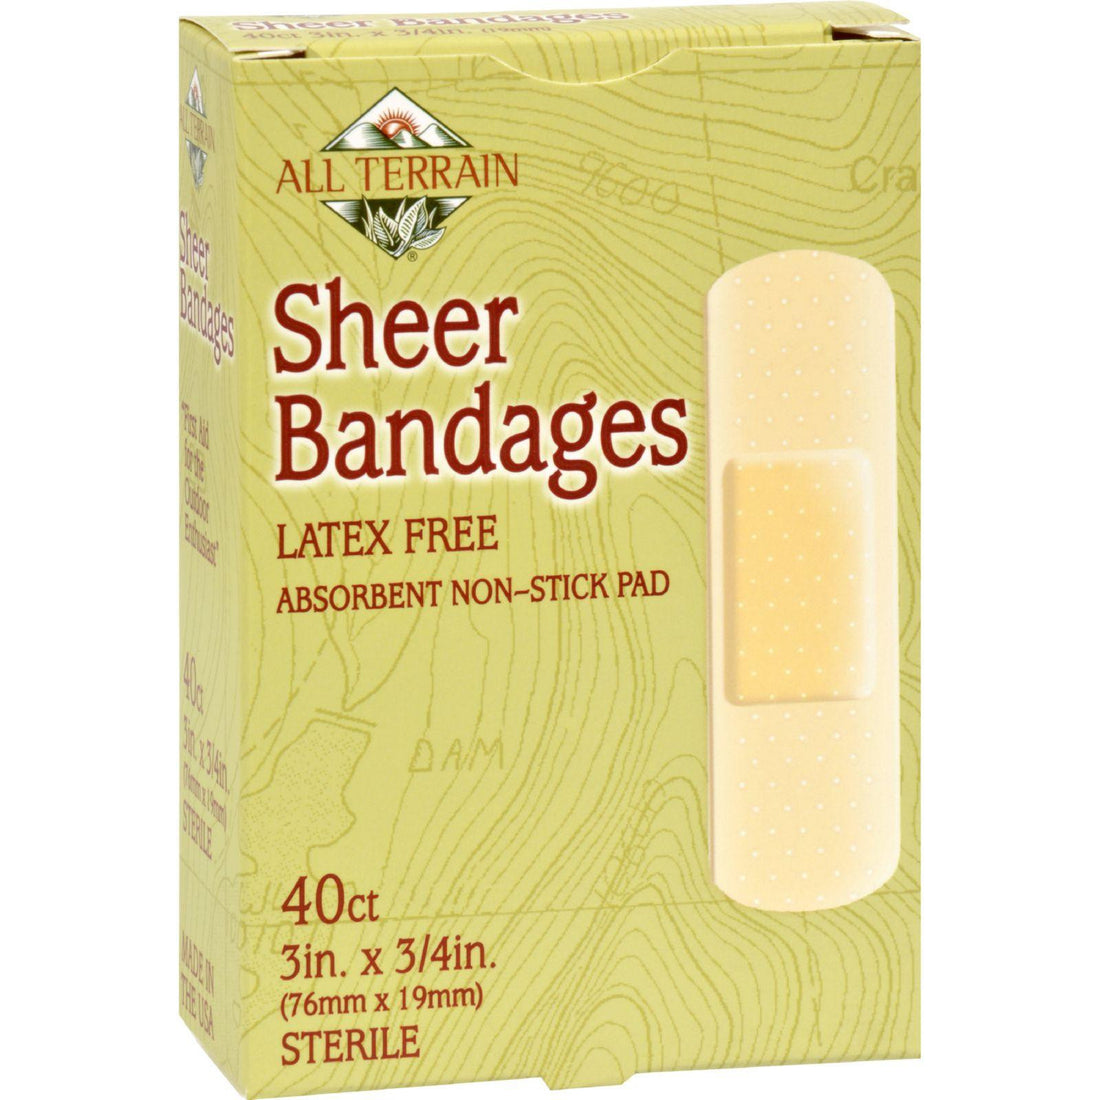 Mother Mantis: All Terrain Bandages - Sheer - 3-4 In X 3 In - 40 Ct All Terrain